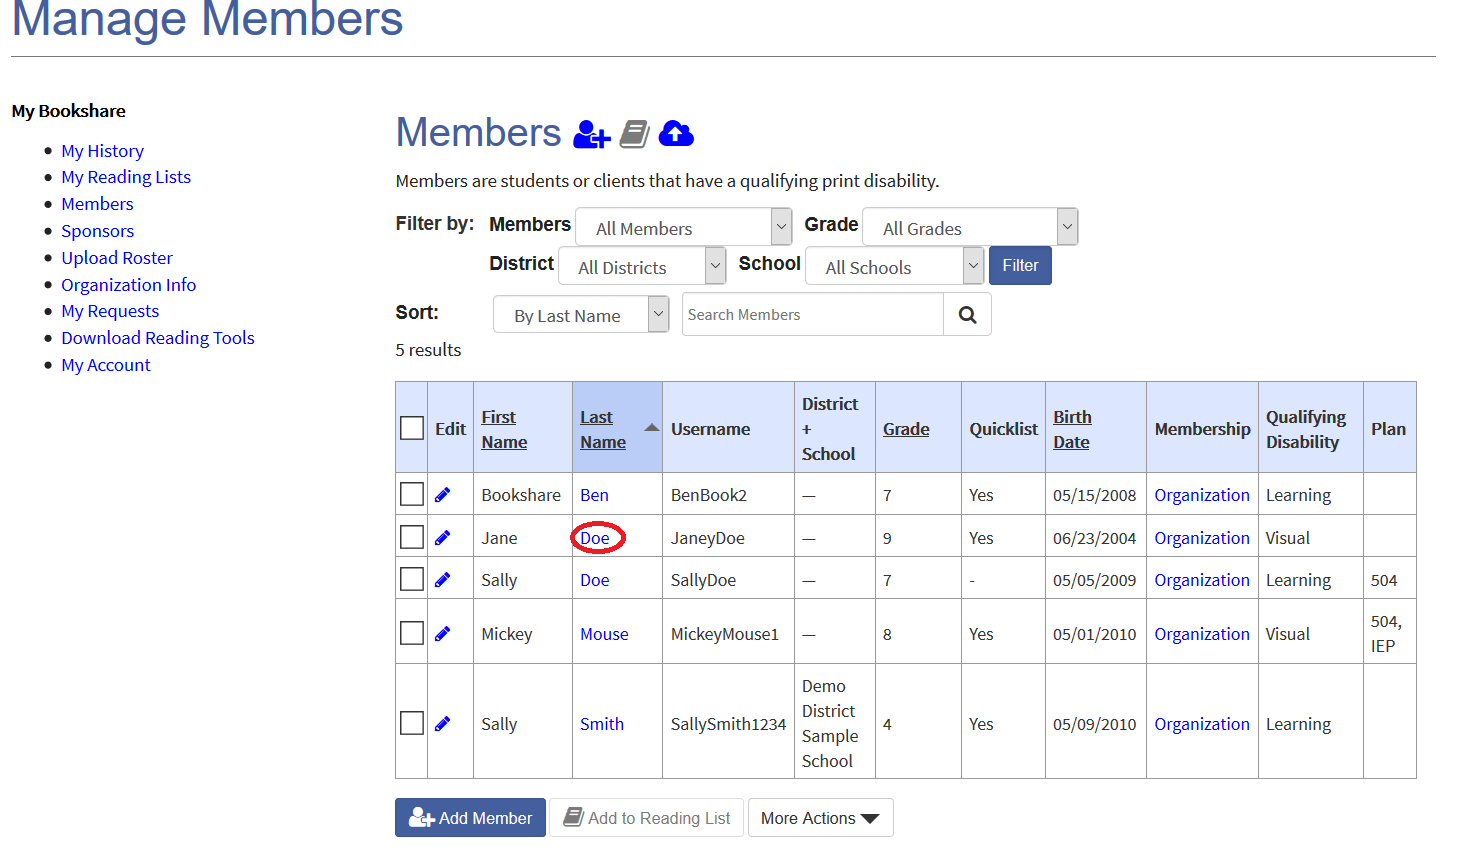 Manage Members page with red circle over a member's last name